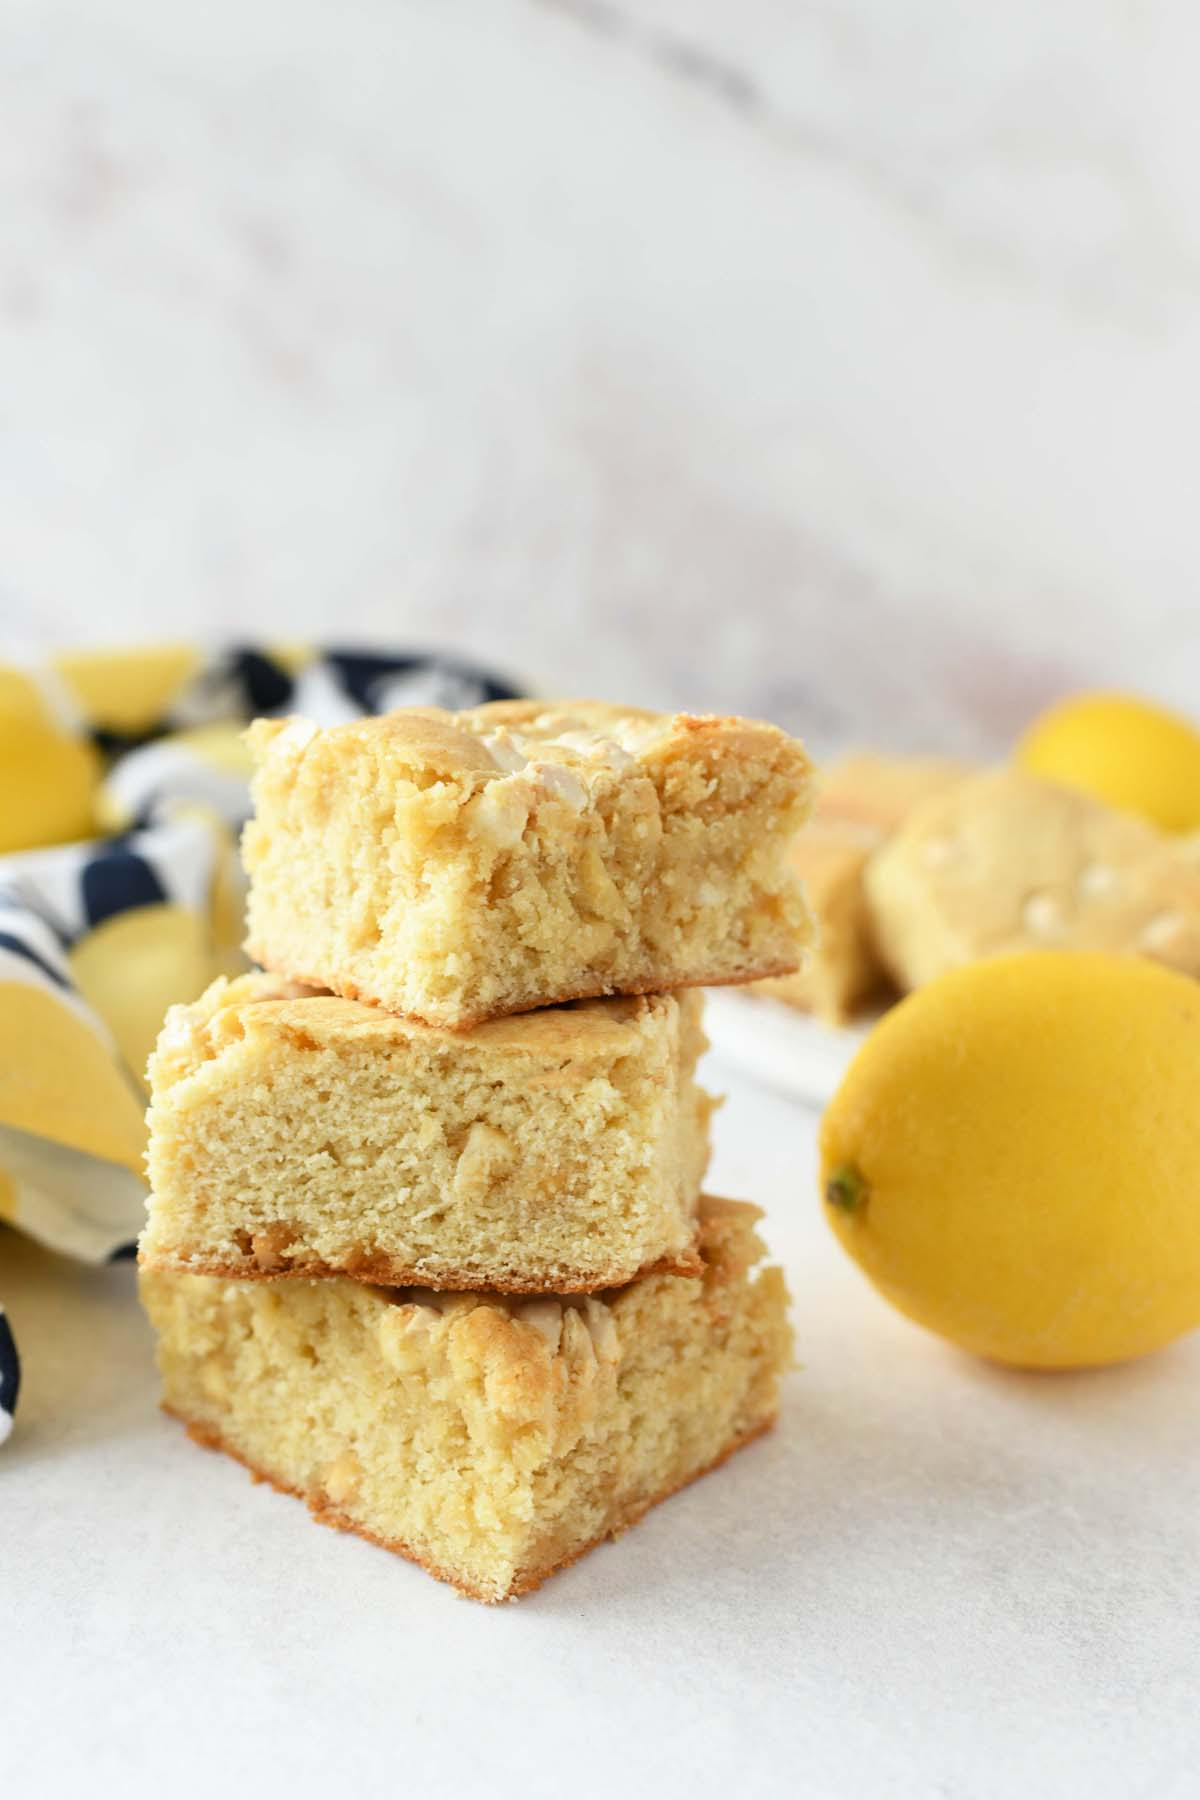 Lemon Cake Brownies are stacked on a marble table with fresh lemons nearby.